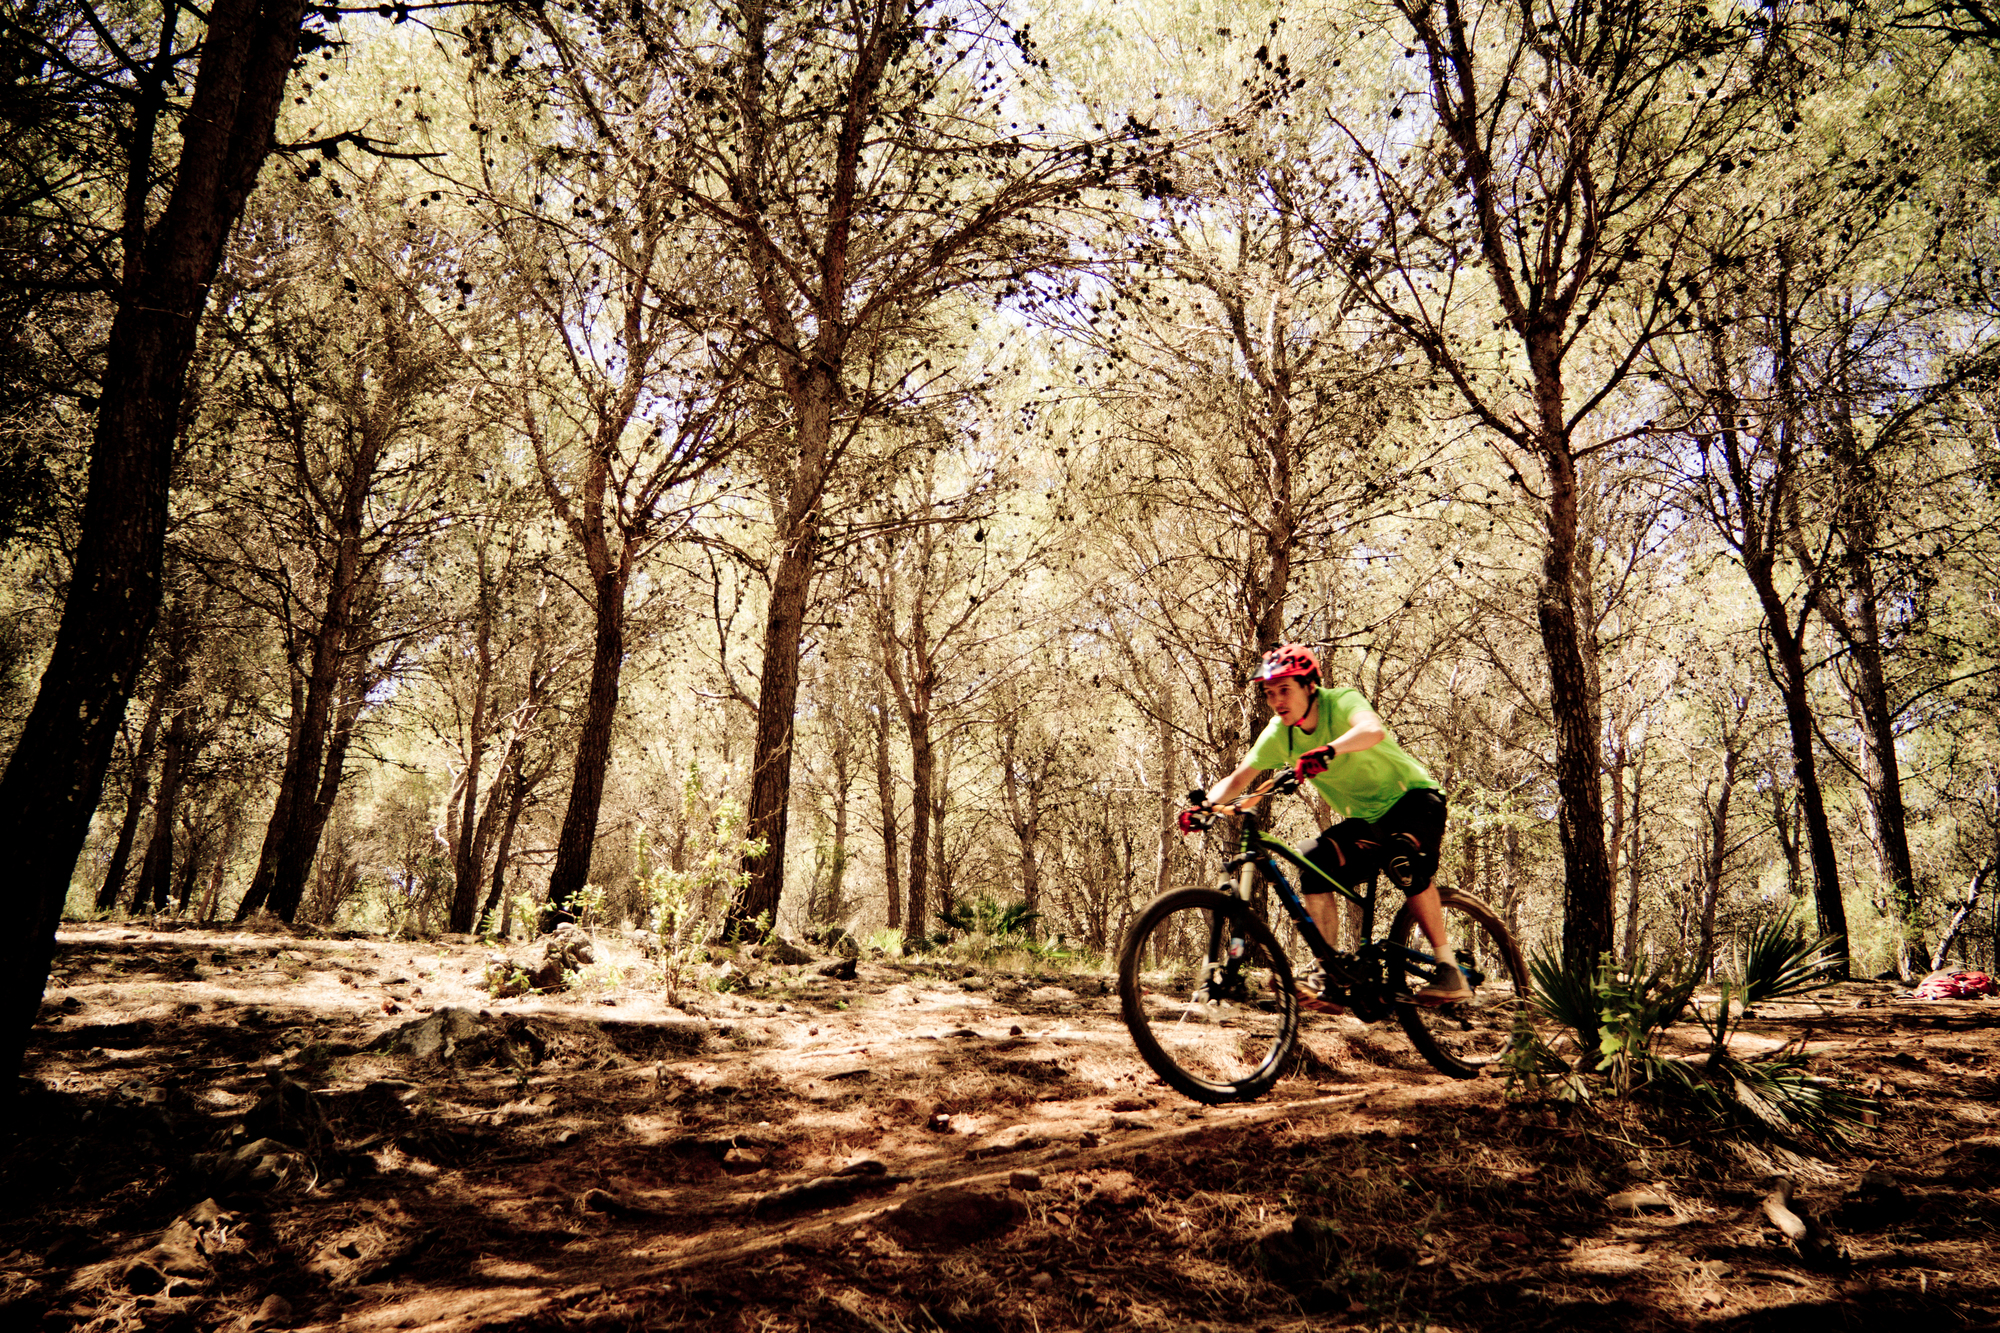 The trails located around the city of Alhaurín el Grande will make every rider smile